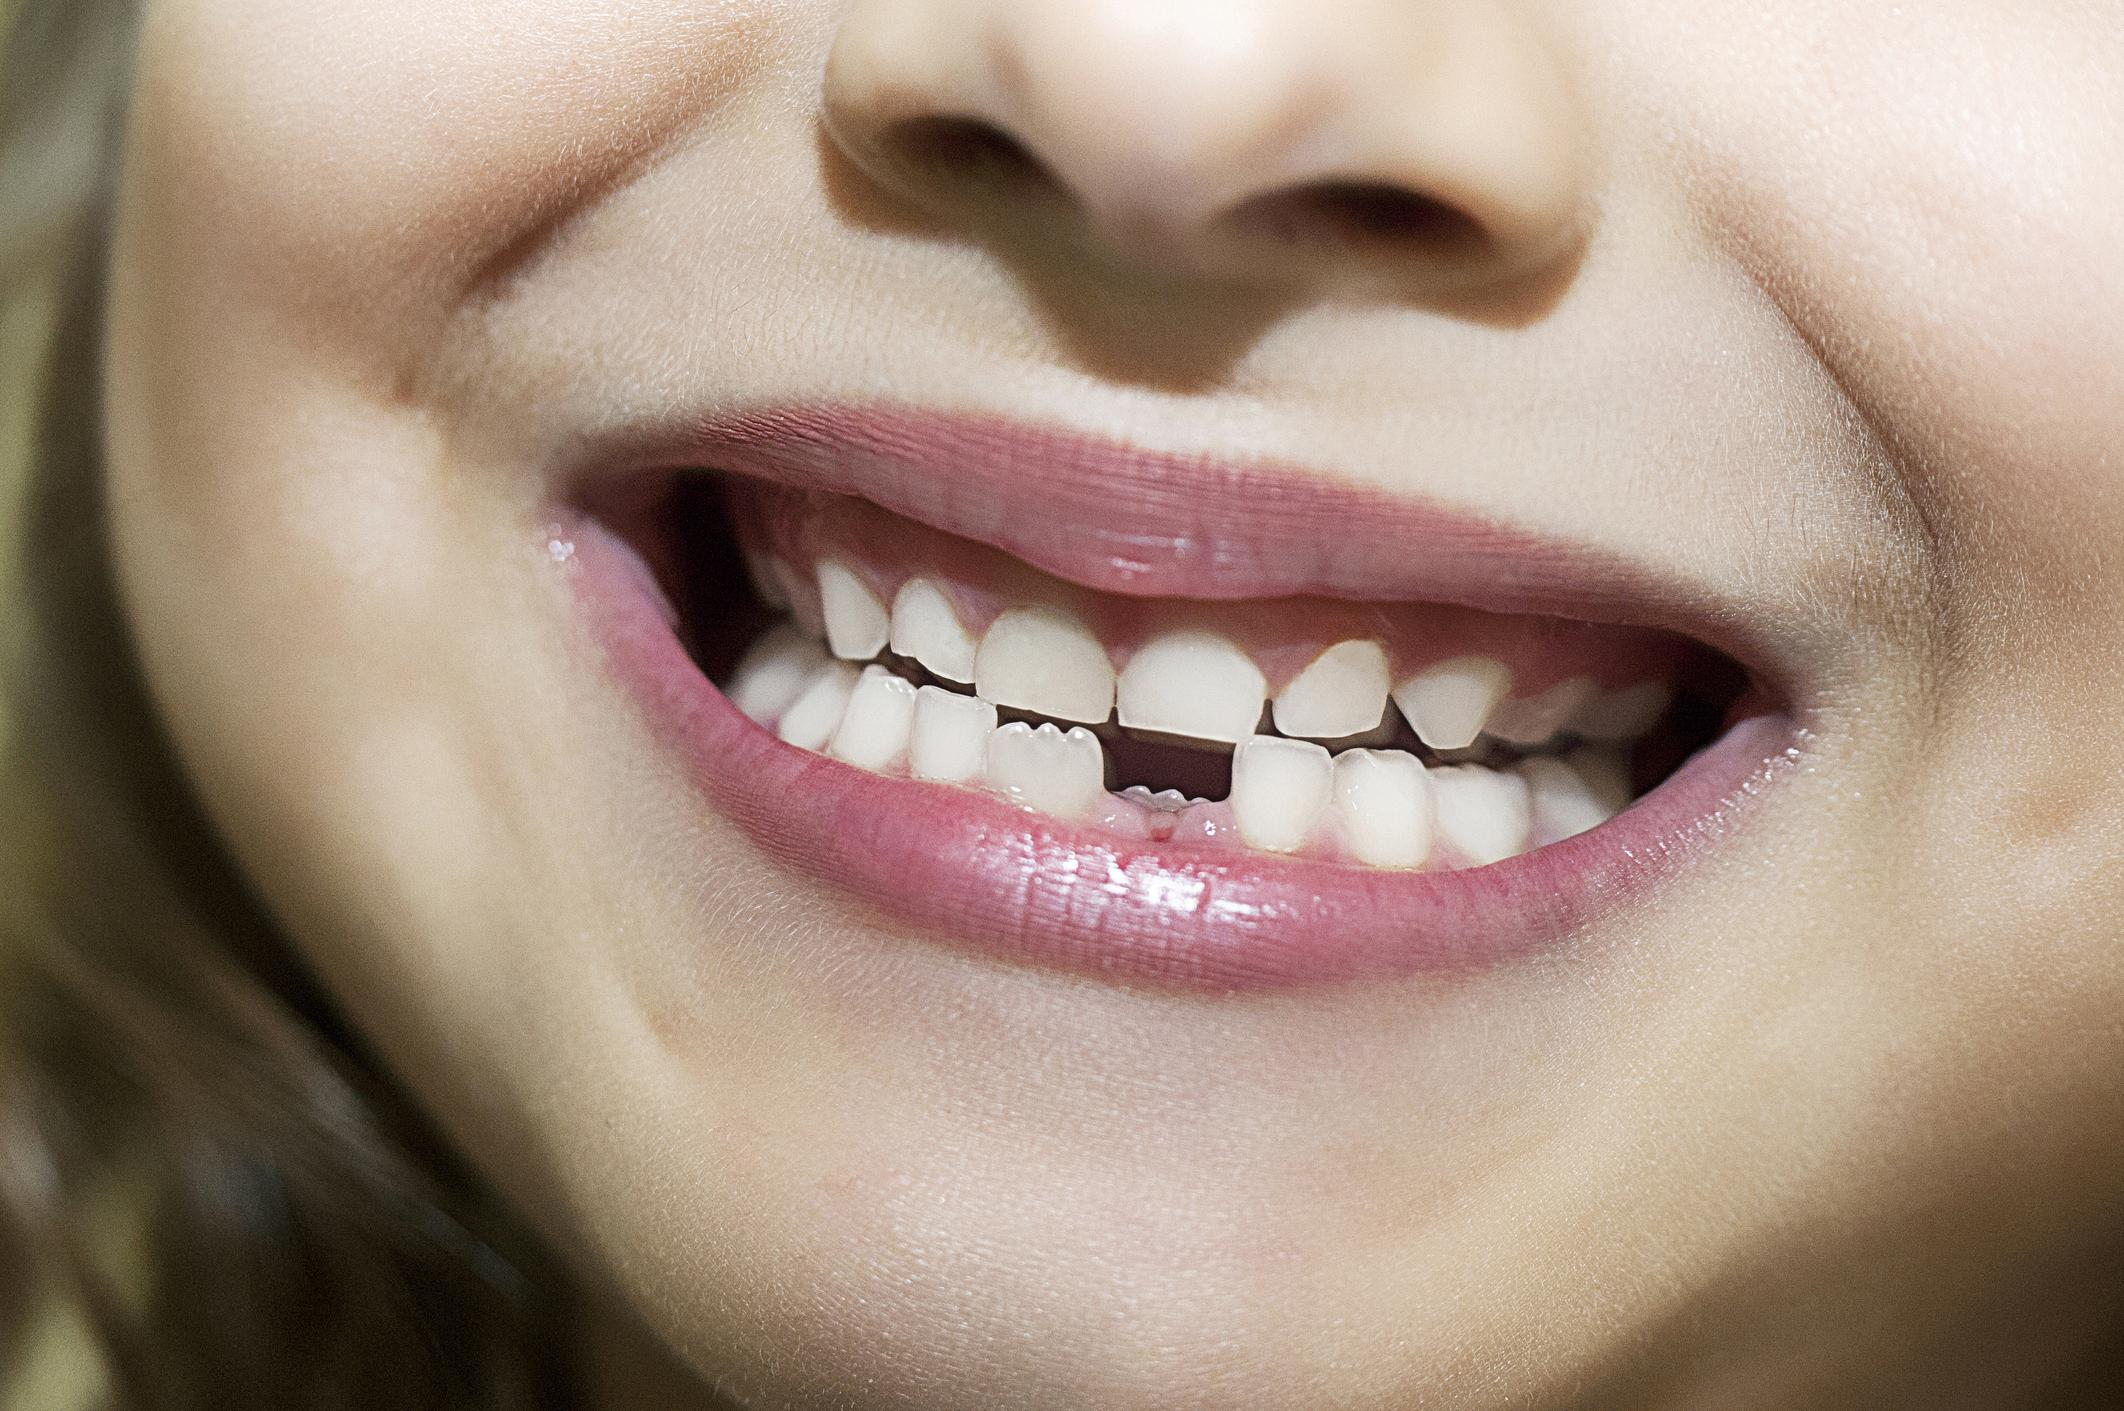 Mental health problems can be diagnosed using children's teeth, scientists suggest